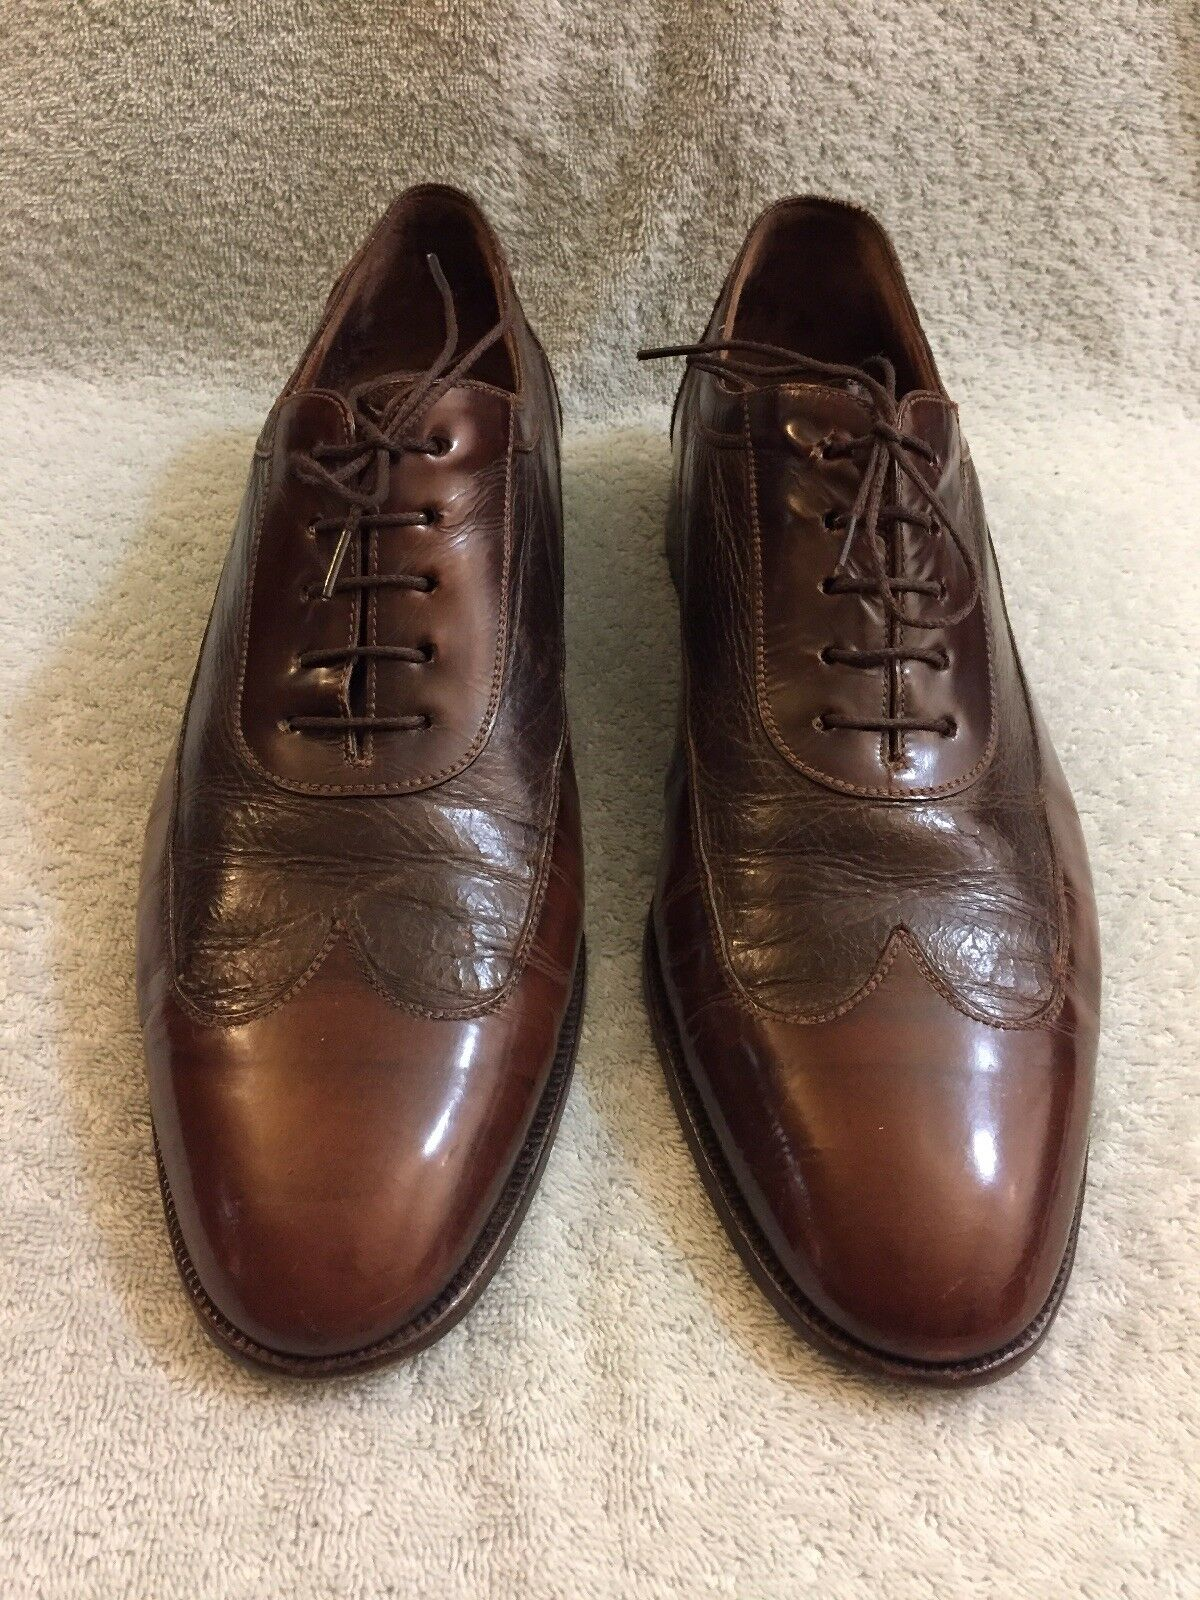 Rossetti Moda VTG  Men's Patent Leather Brown Lace Up Wingtip shoes 9.5 11 3 4""